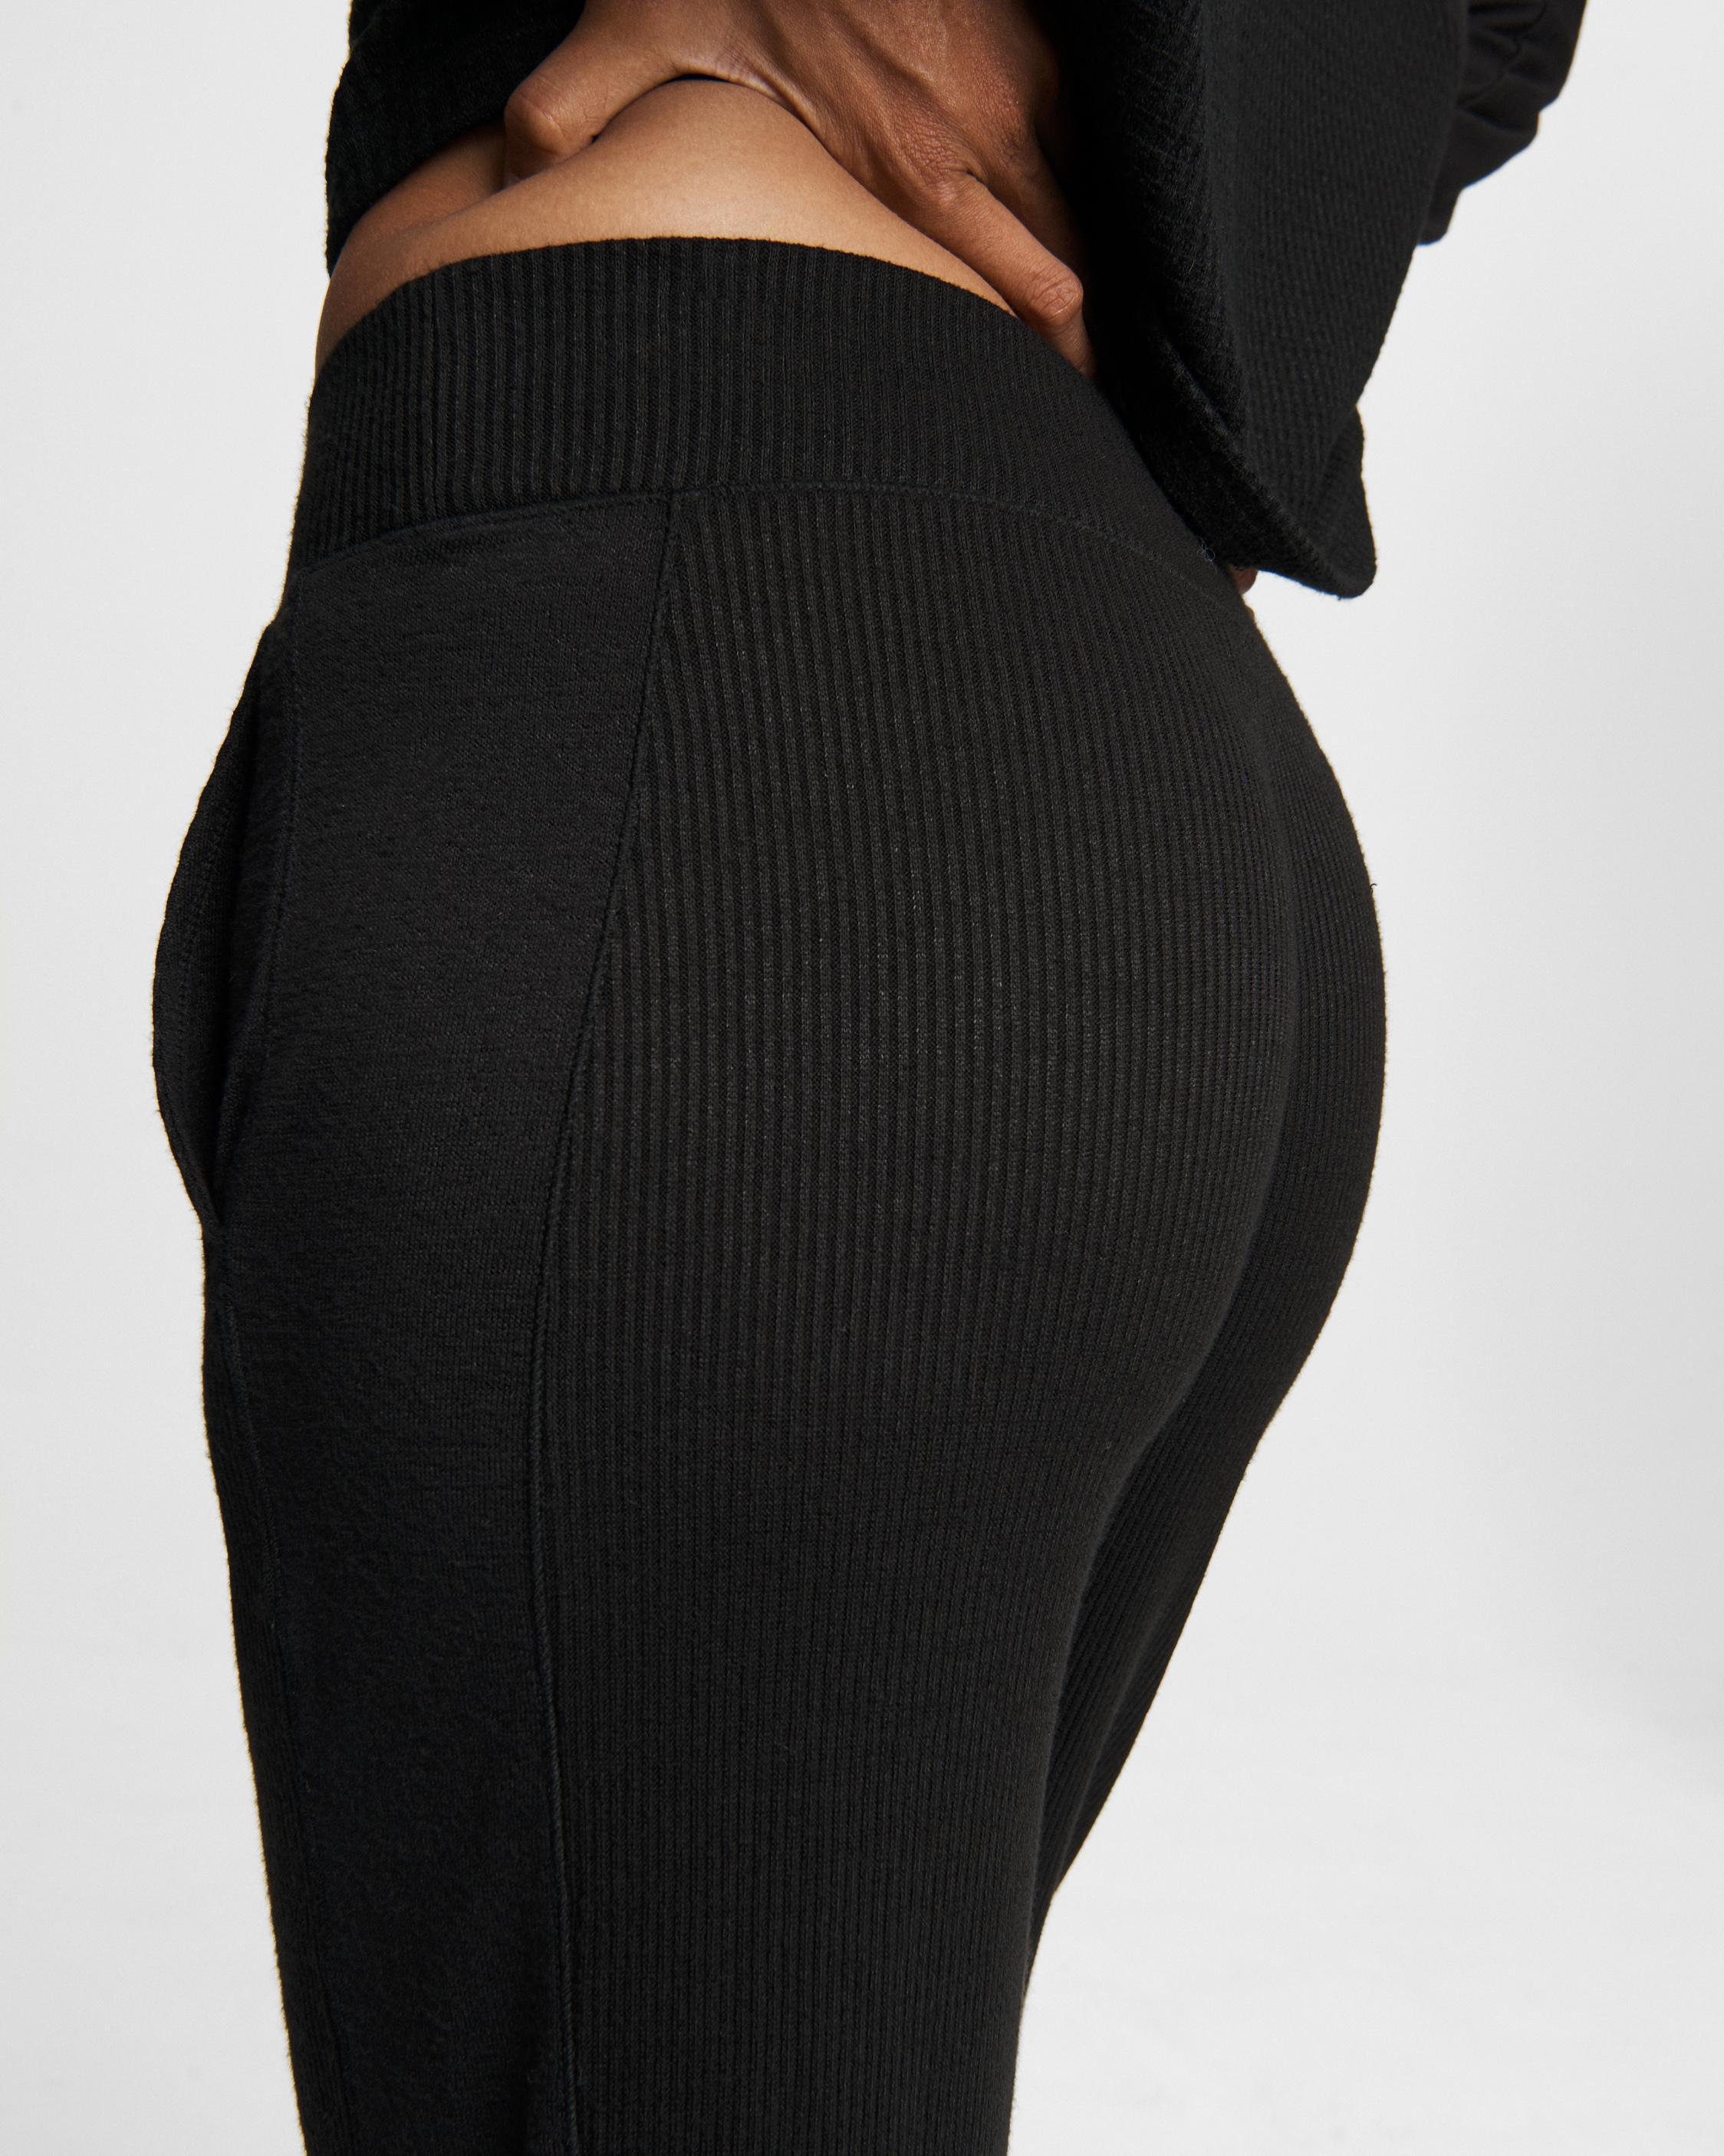 The knit jersey pant 4